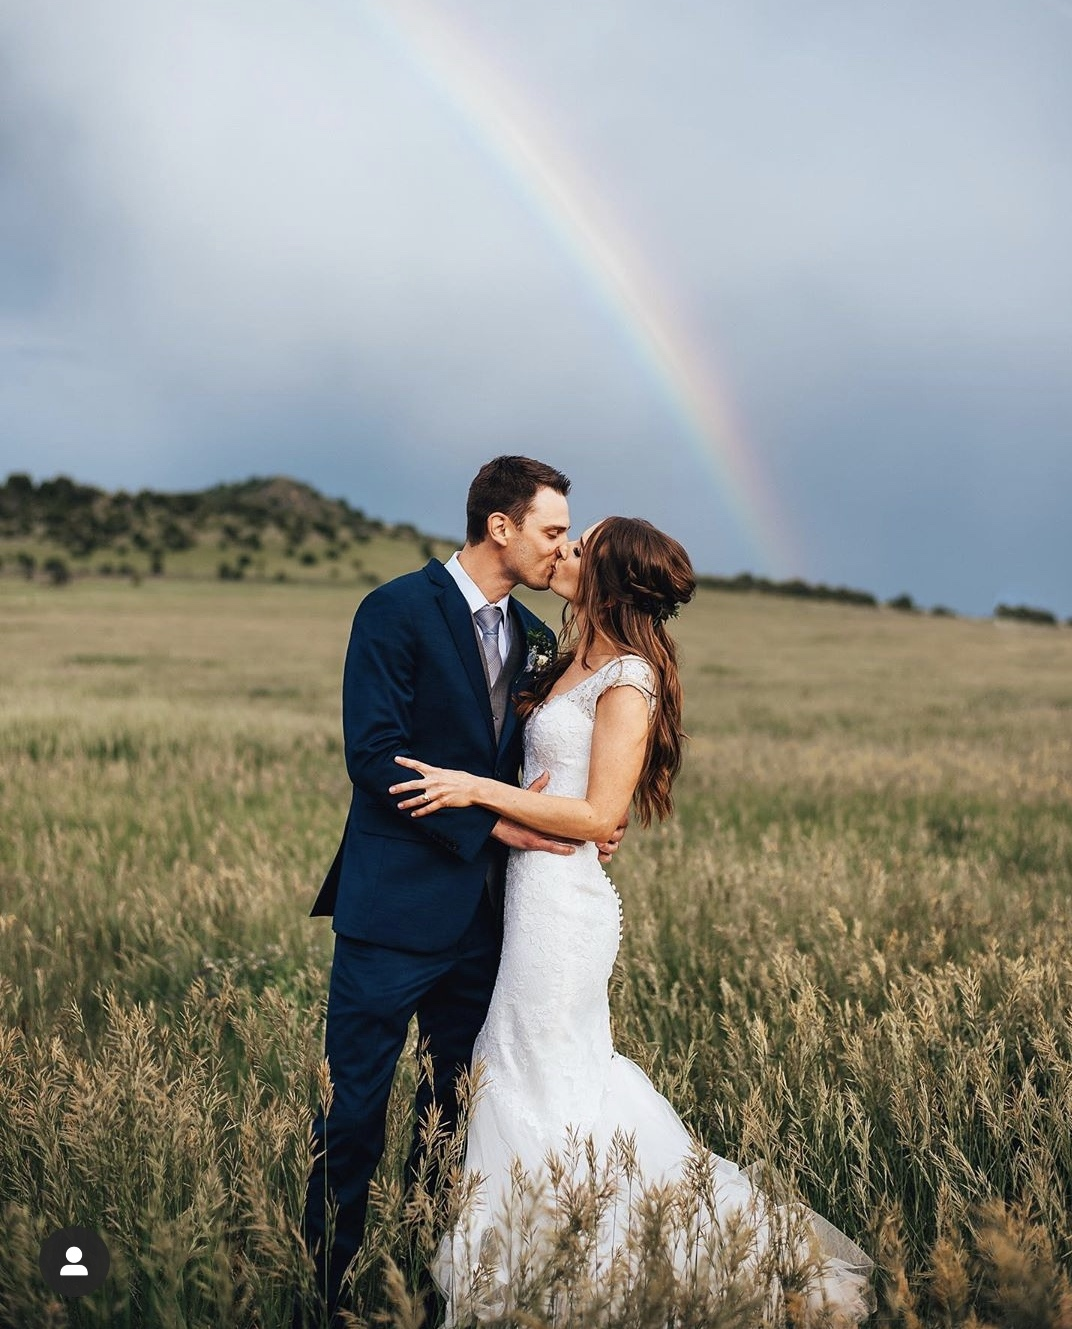 What if it Rains on Your Wedding Day?!